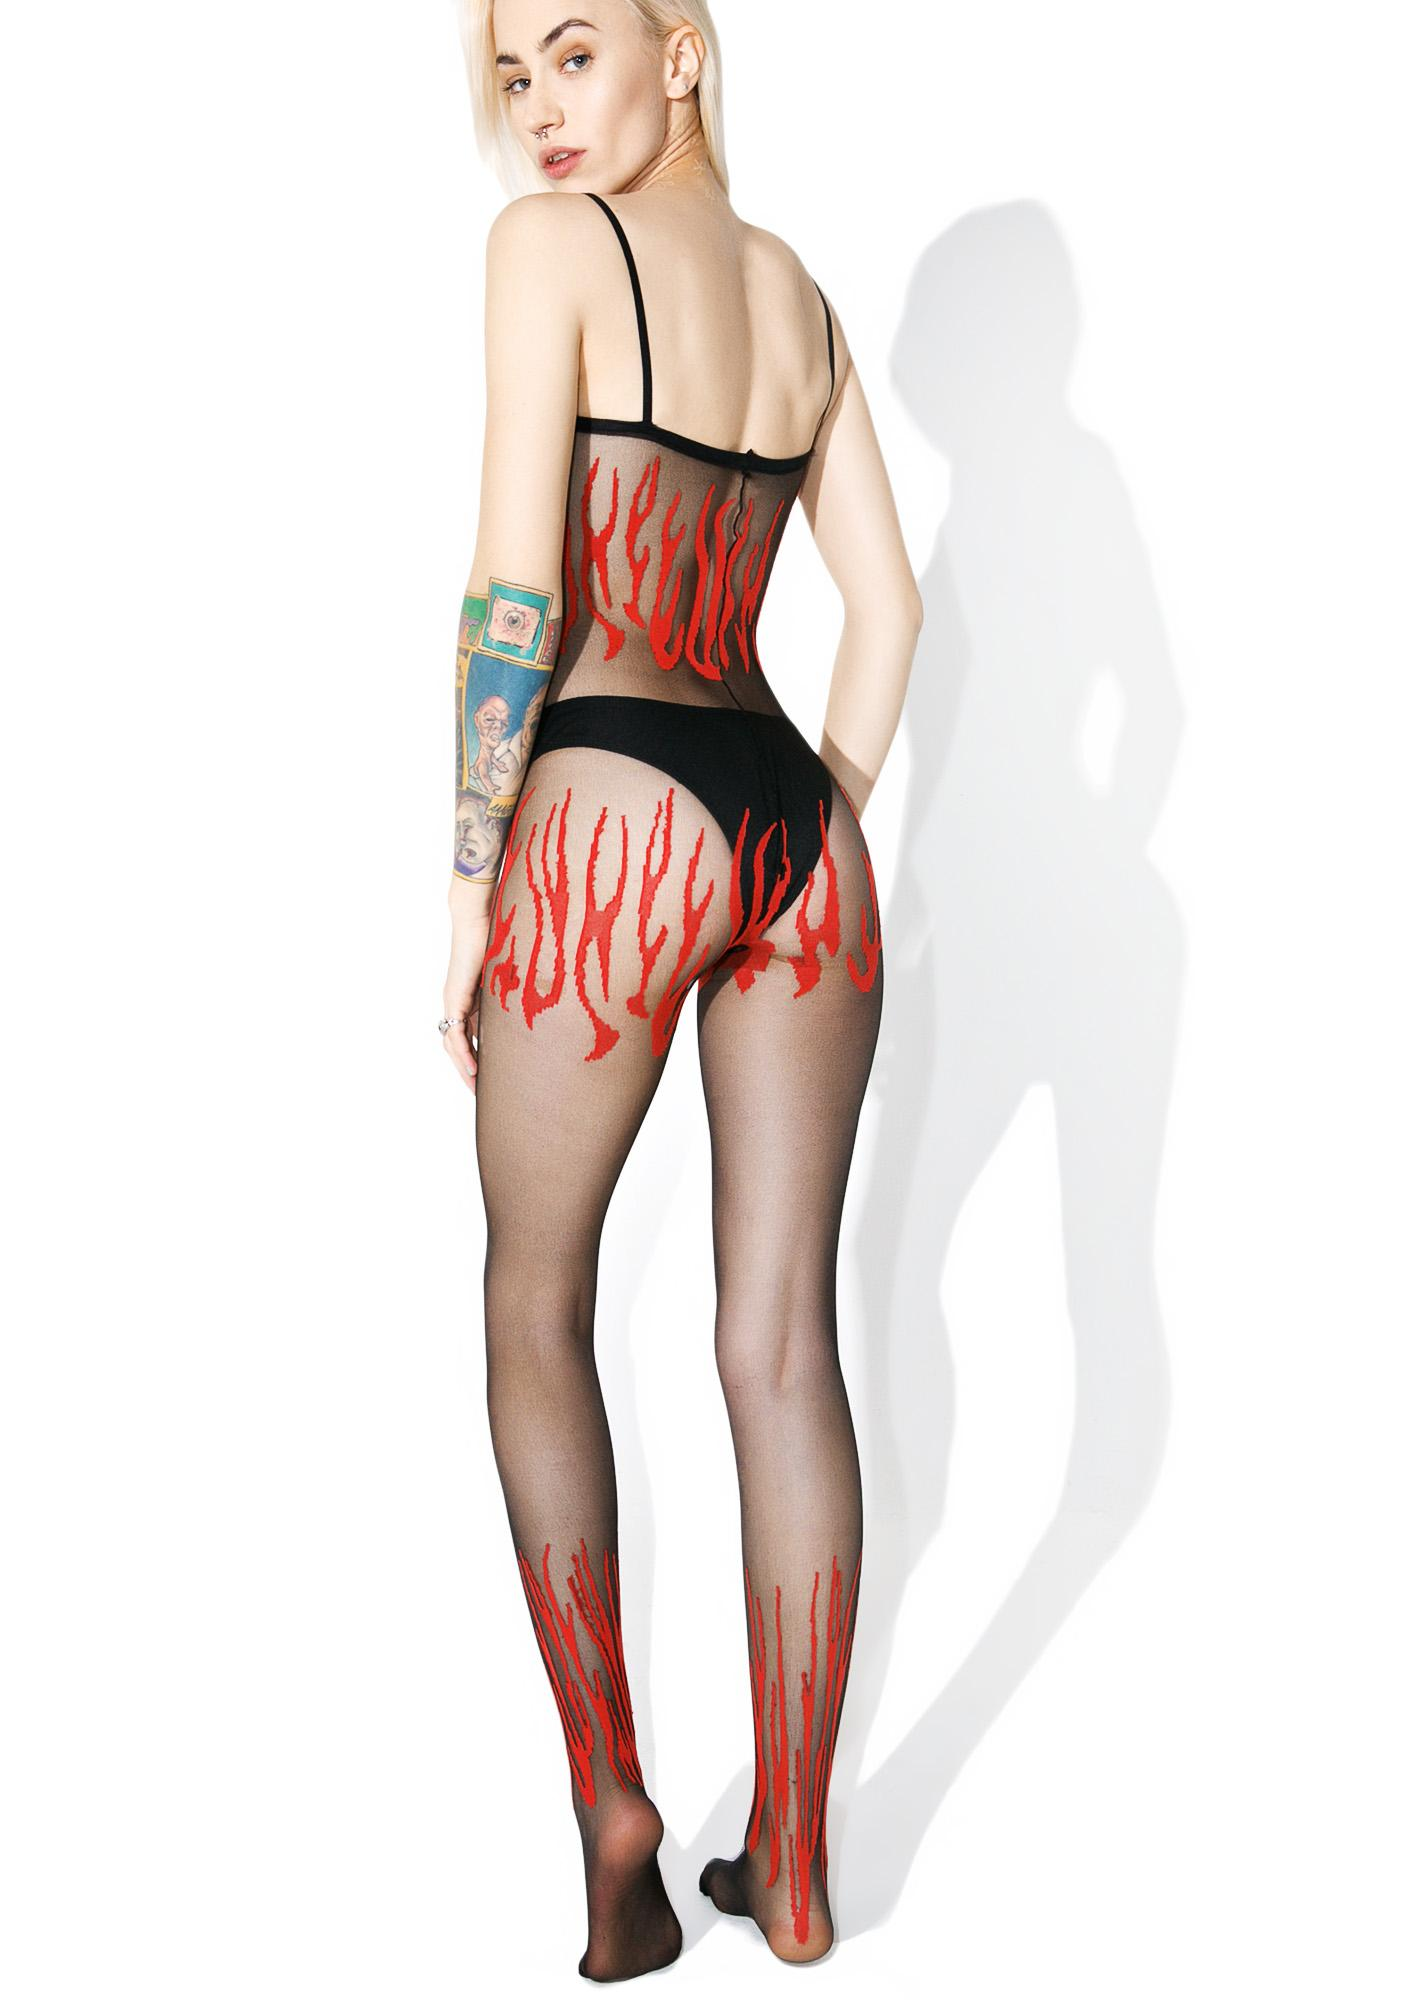 Lucy-fer Crotchless Bodystocking